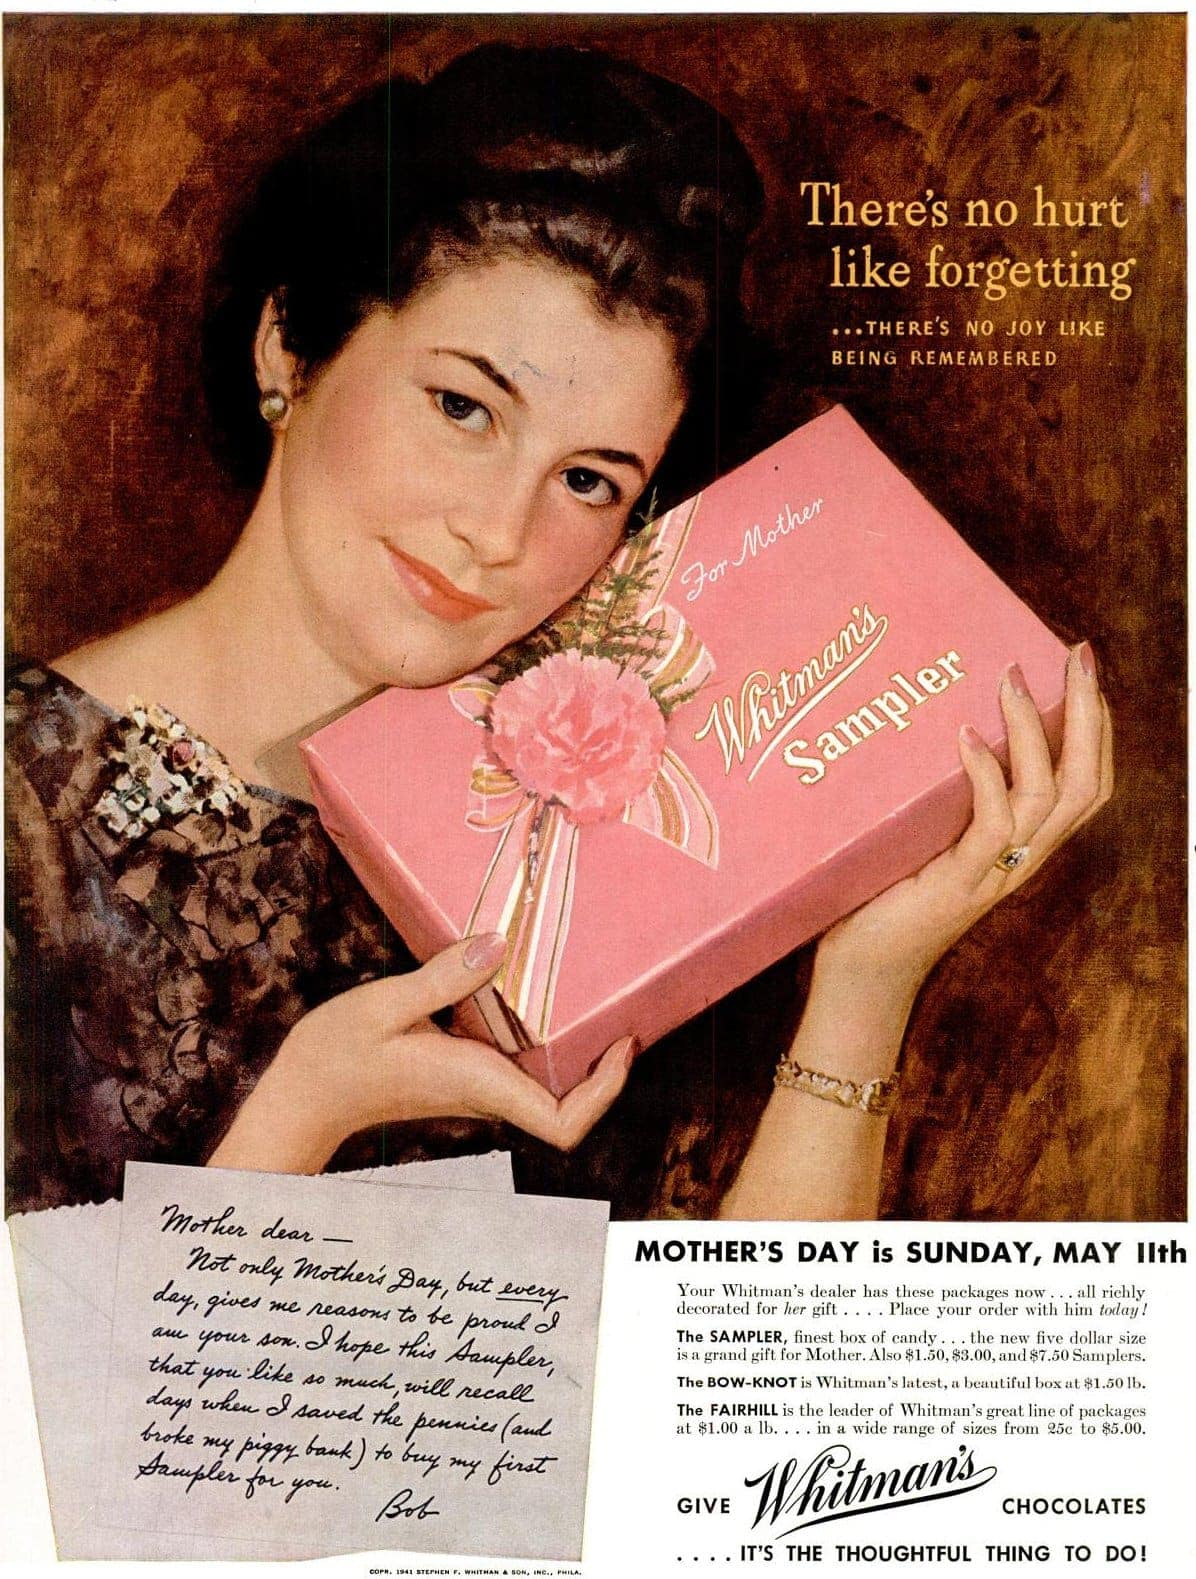 May 5, 1941 Mother's Day guilt trip